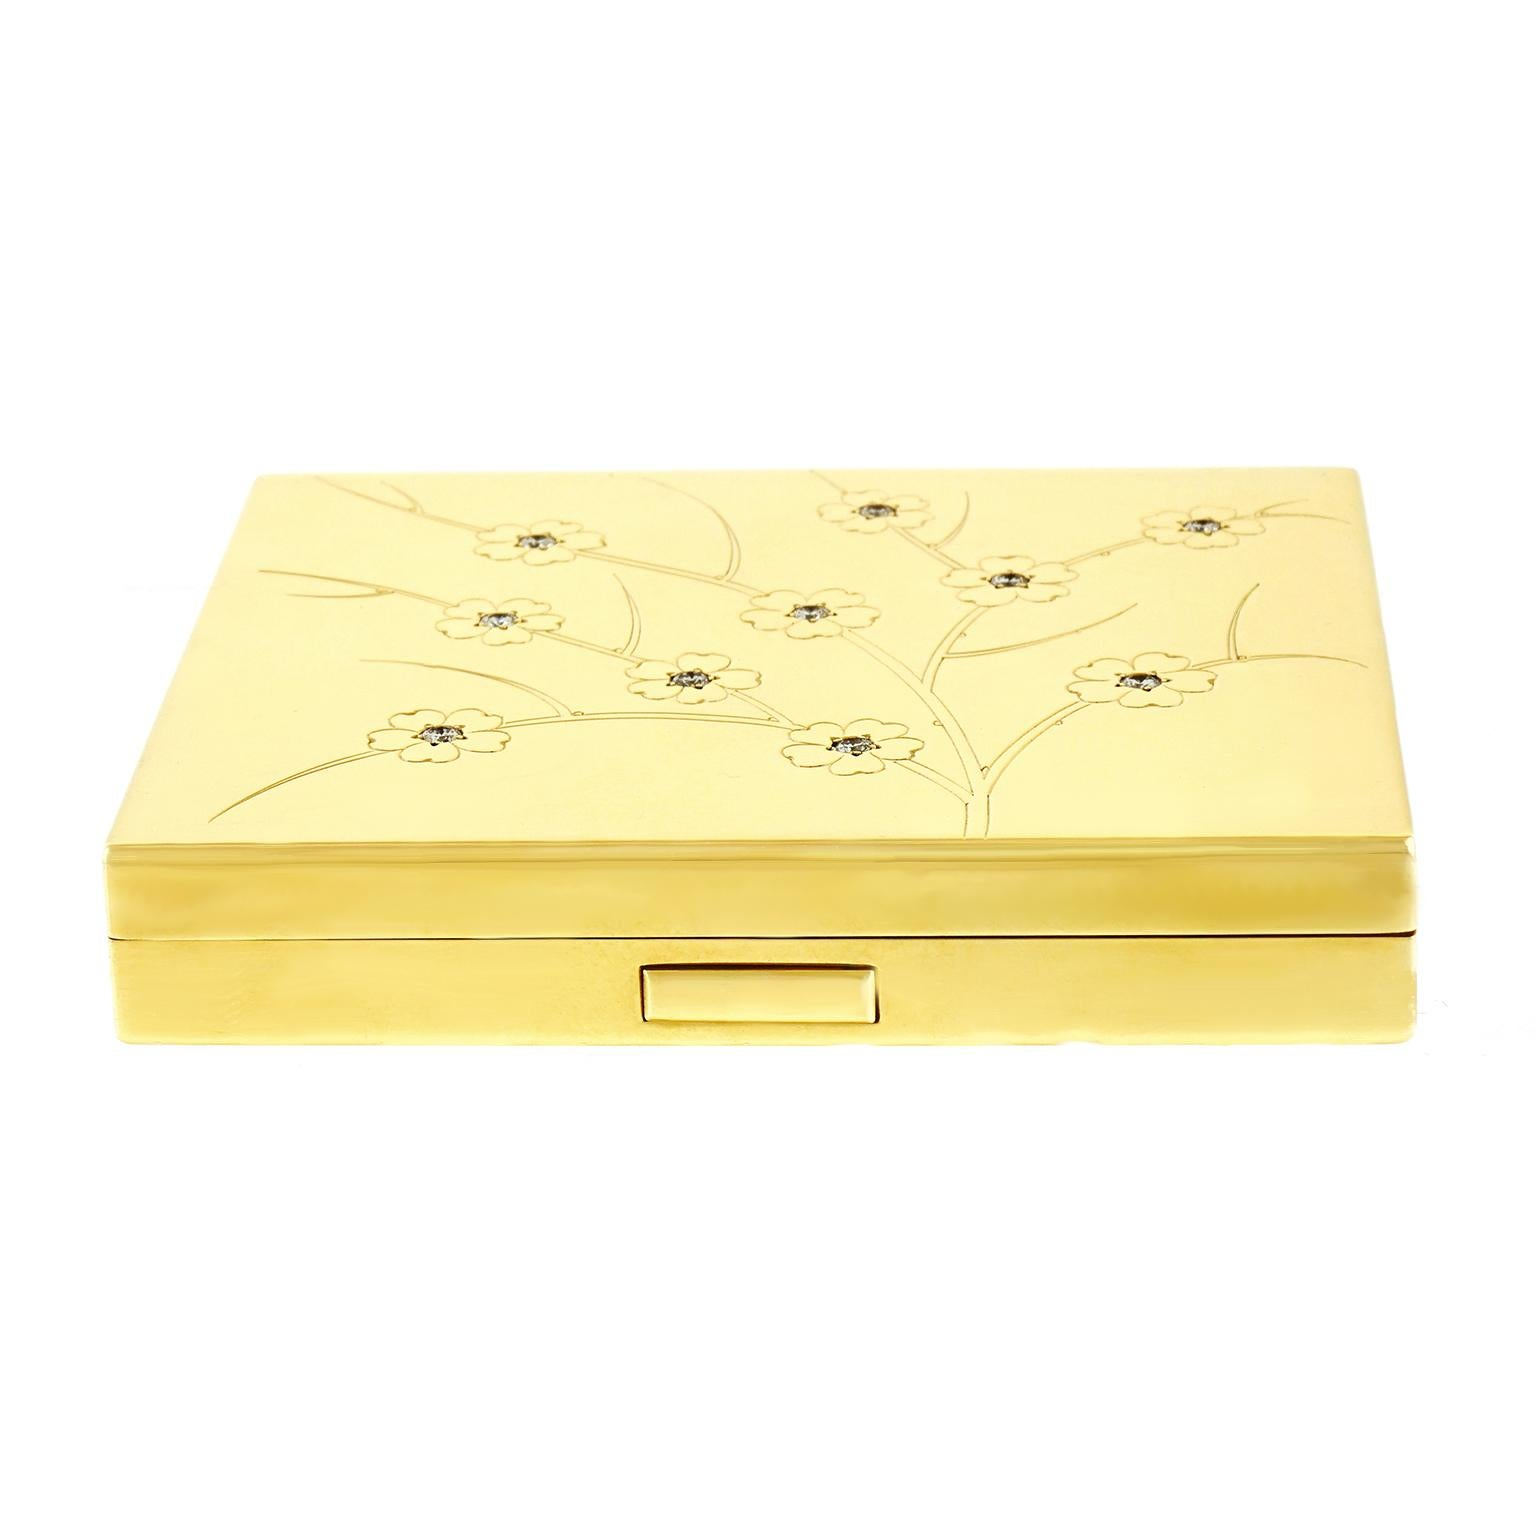 edebe2165 Antique 14k Gold Boxes and Cases - 35 For Sale at 1stdibs